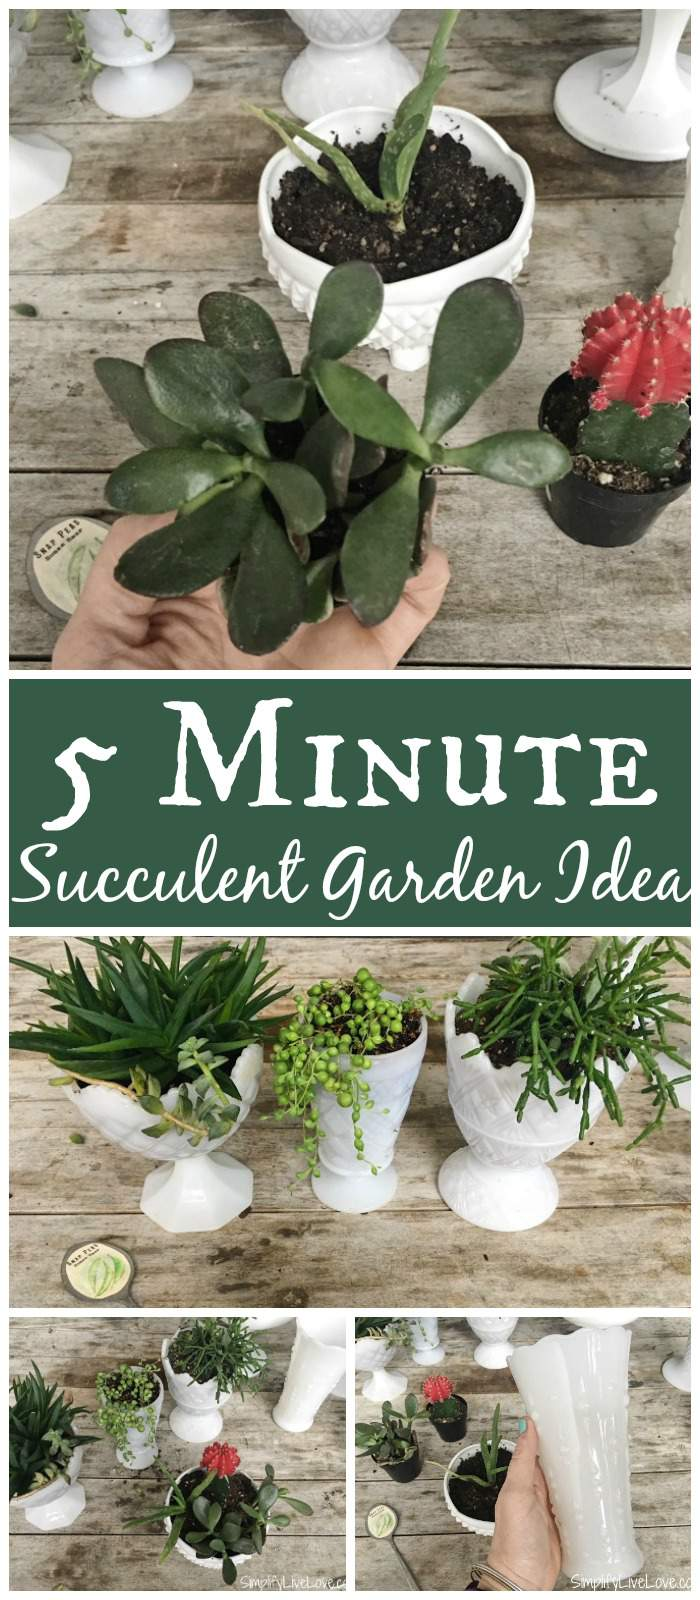 Looking for an easy succulent garden gift? This 5 Minute Upcycled Succulent Garden Gift makes a fabulous addition to your decor or a quick last minute gift idea! Super cute and easy upcycled garden craft!